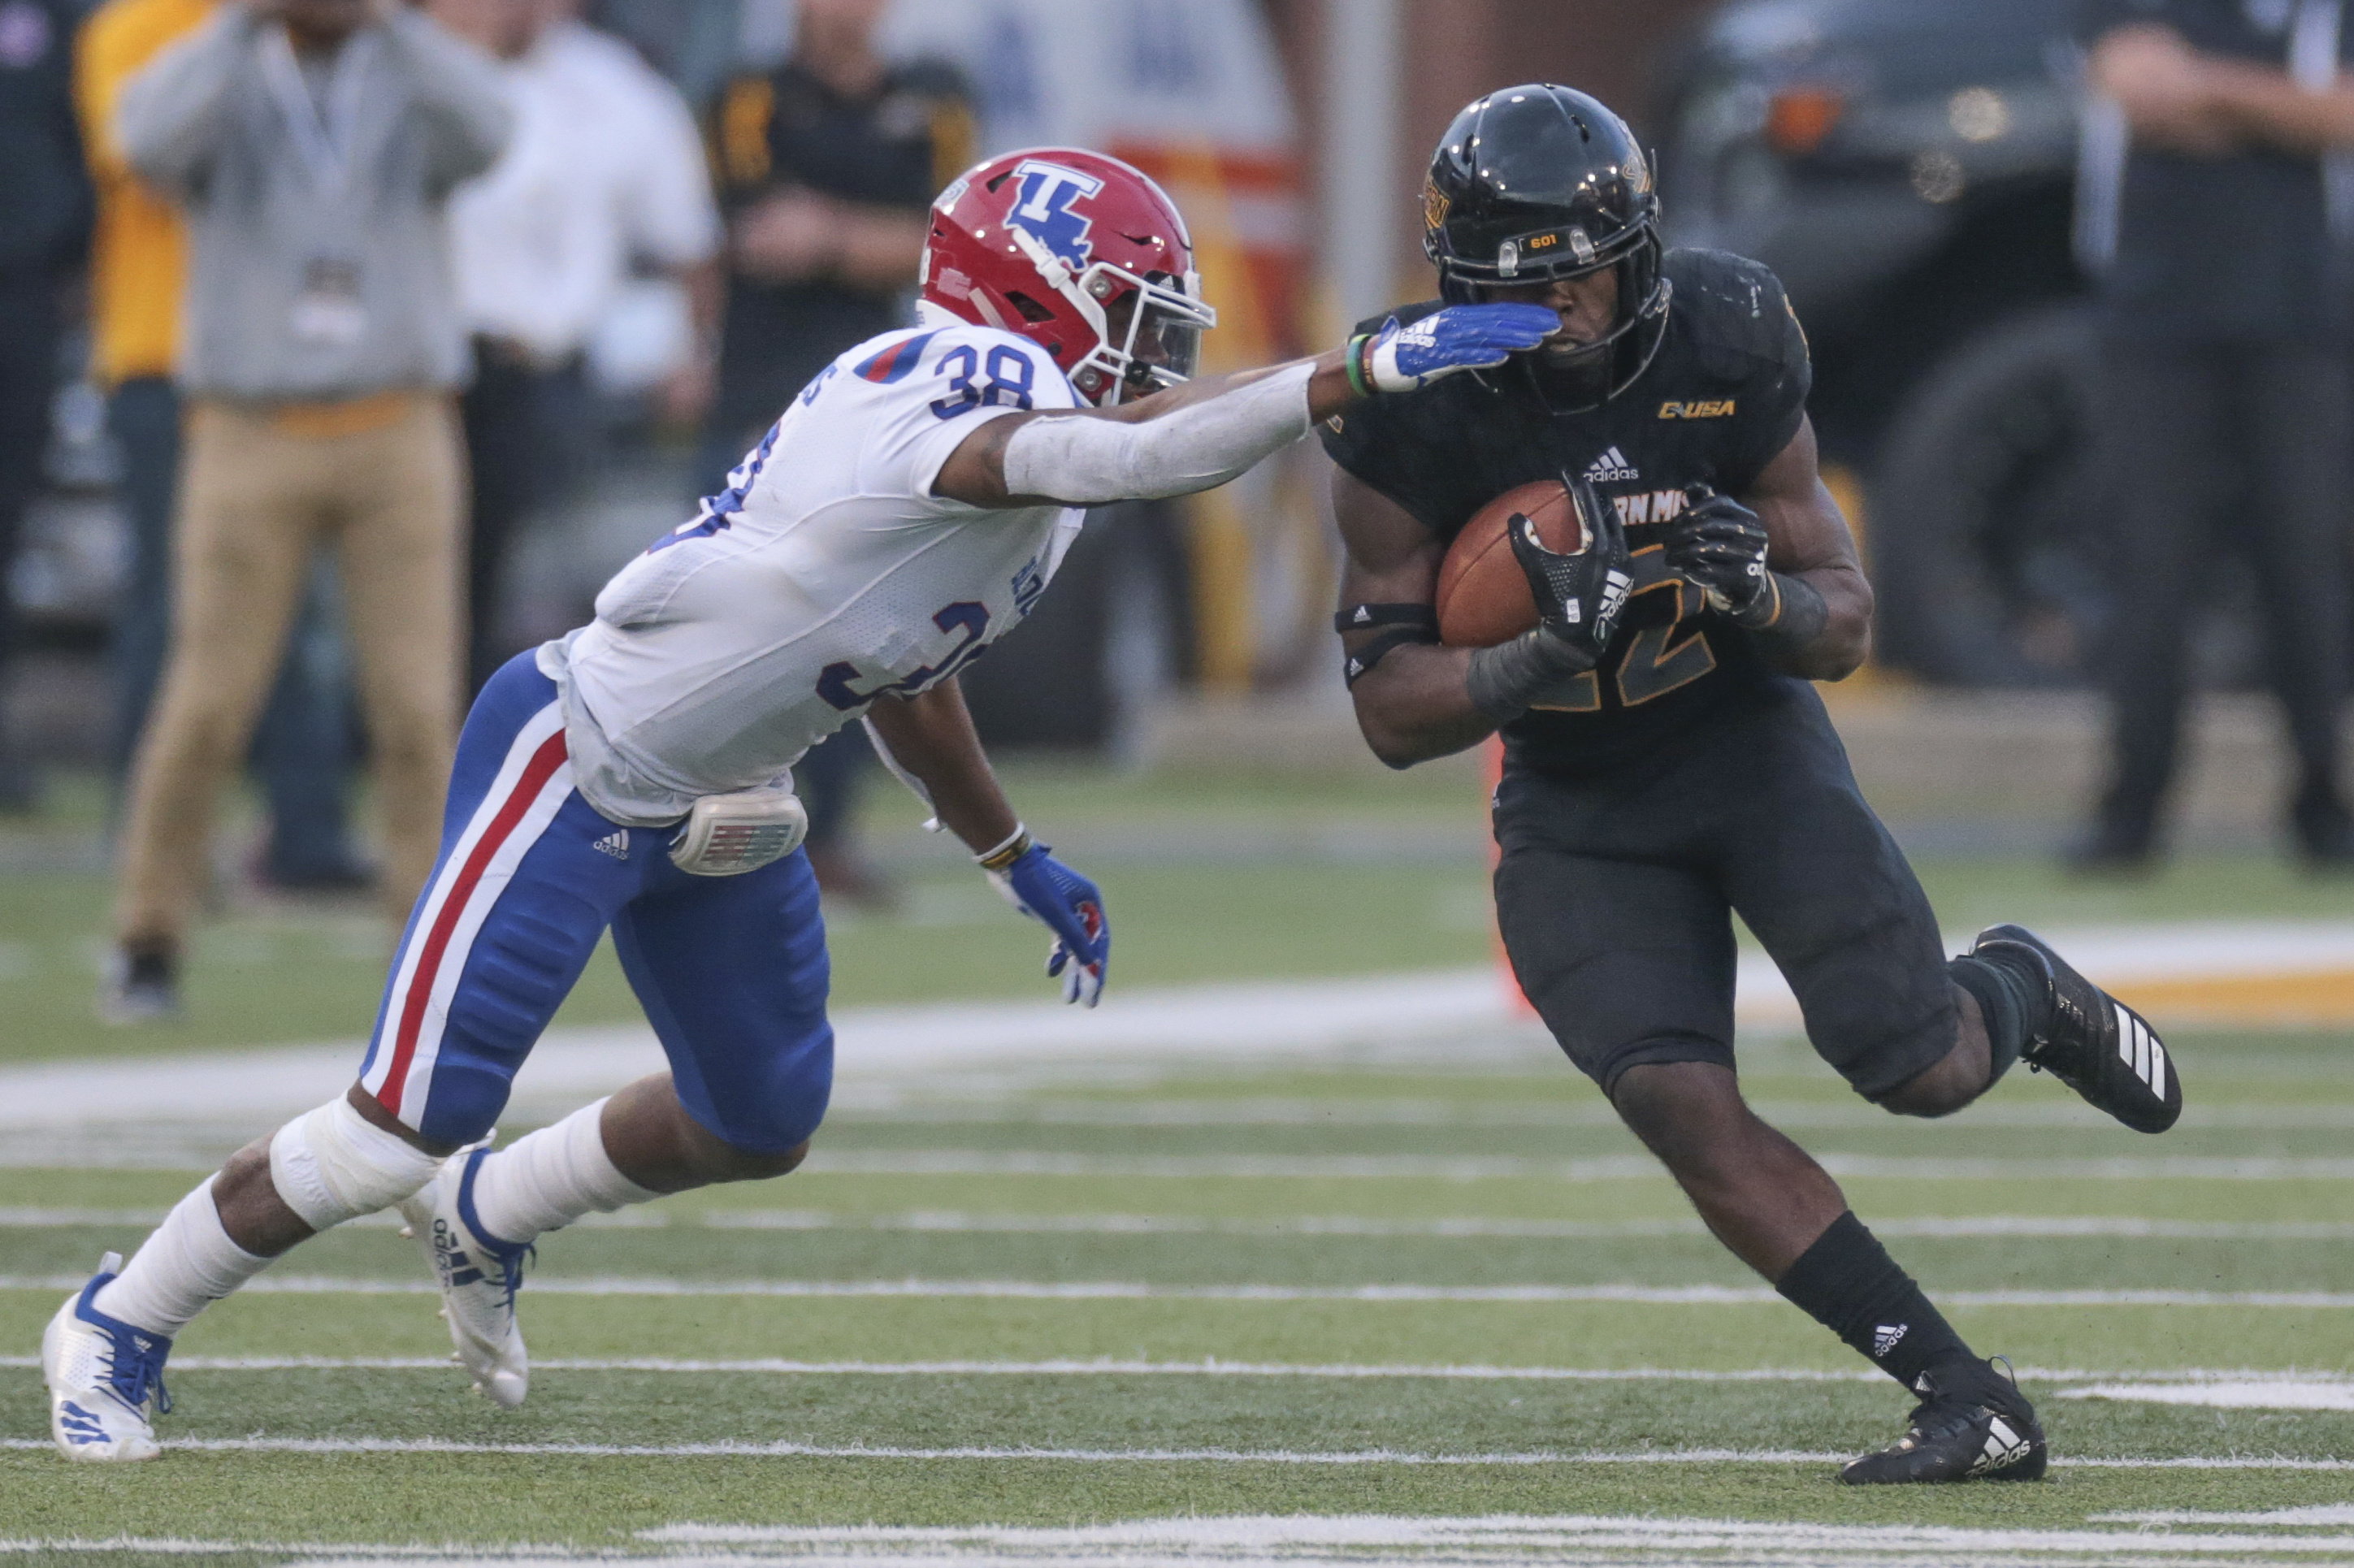 COLLEGE FOOTBALL: NOV 17 Louisiana Tech at Southern Miss